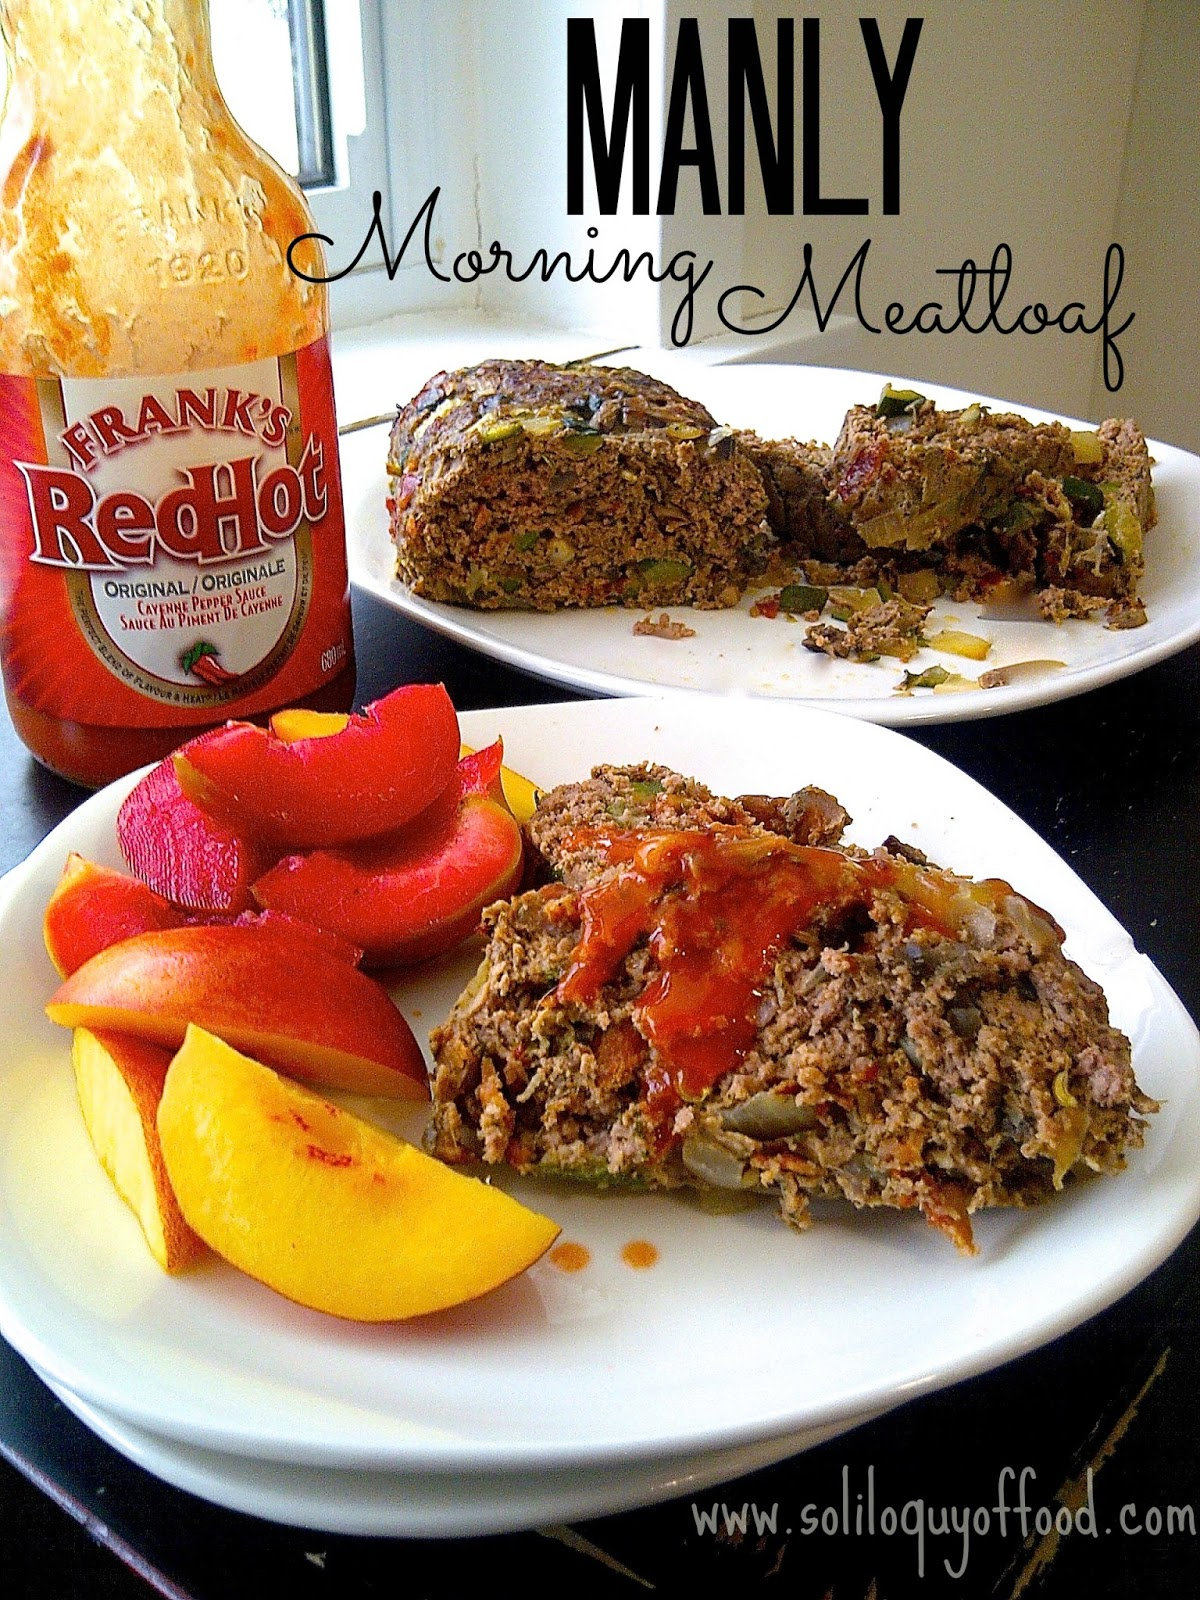 Soliloquy Of Food & Such: MANly Morning Meatloaf #Egg-Free